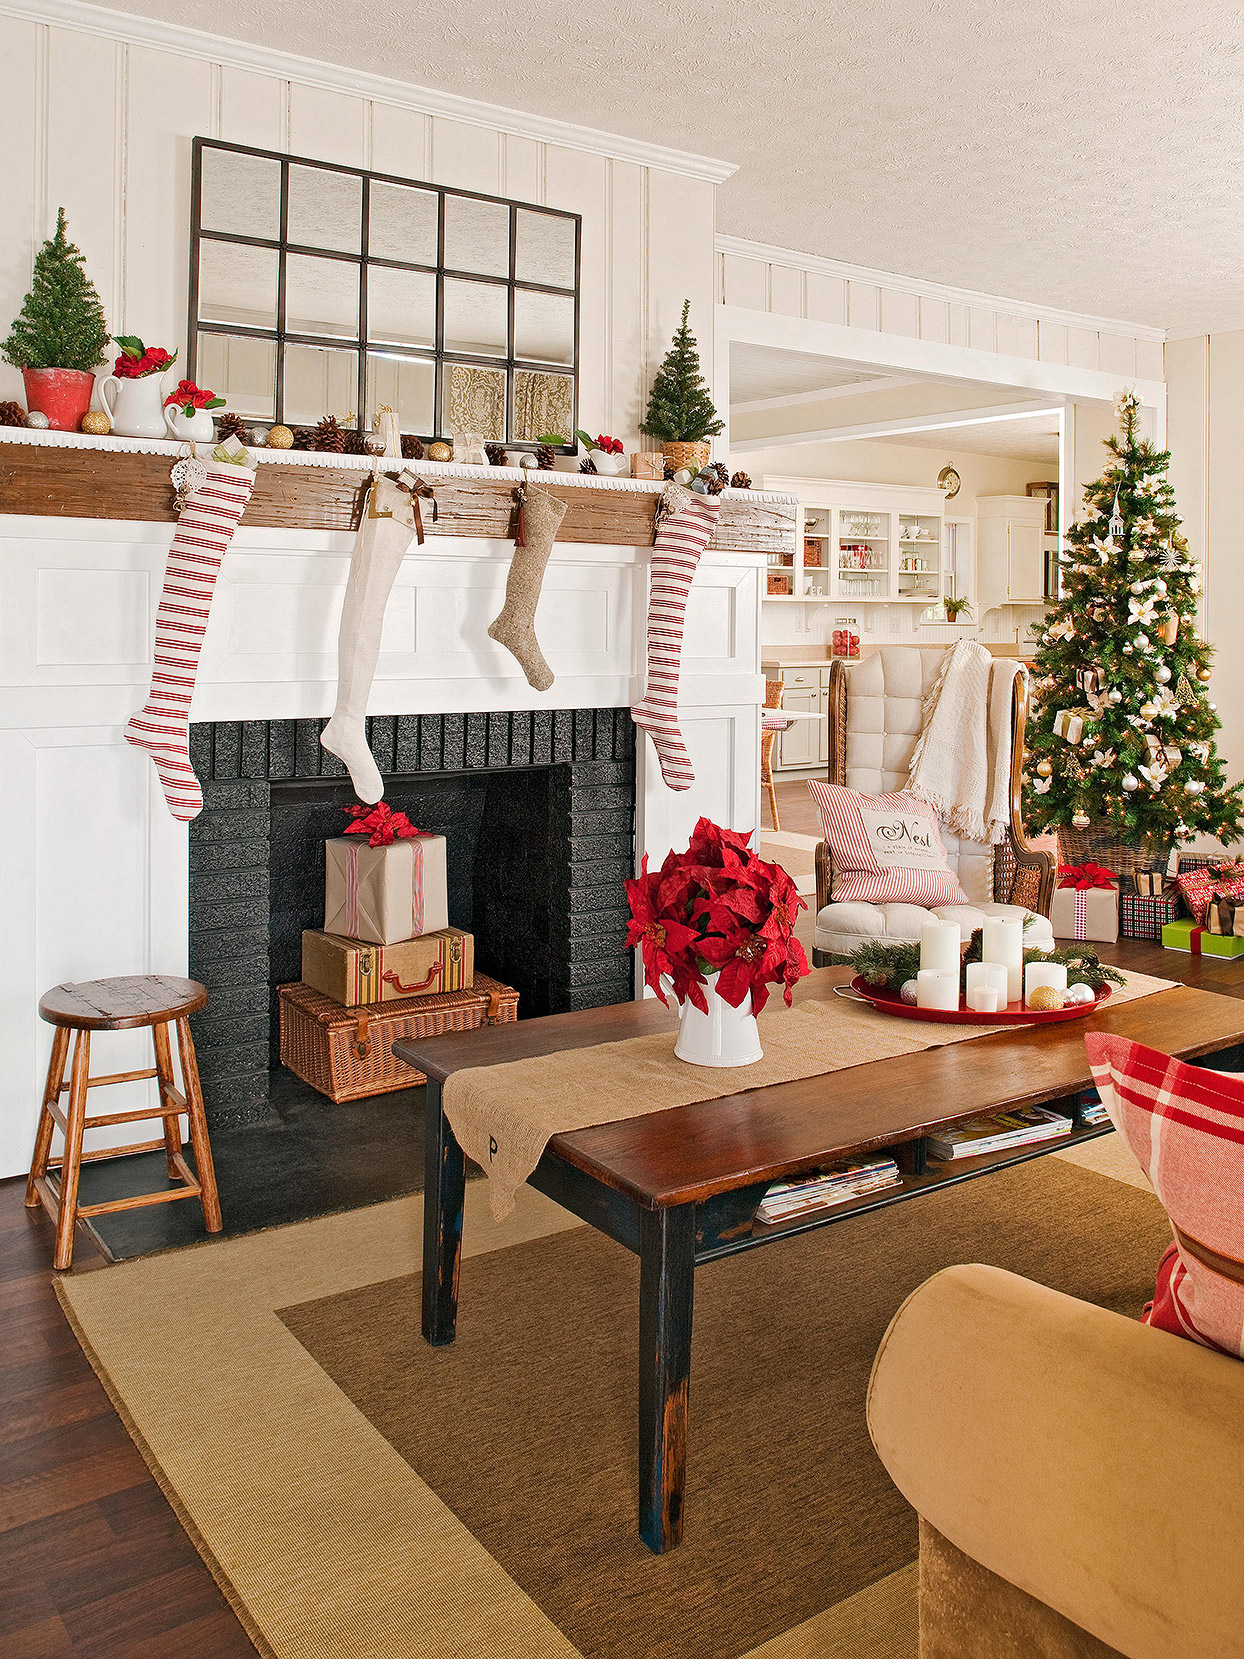 antique Christmas décor in cottage living room with stockings, small trees, and gifts